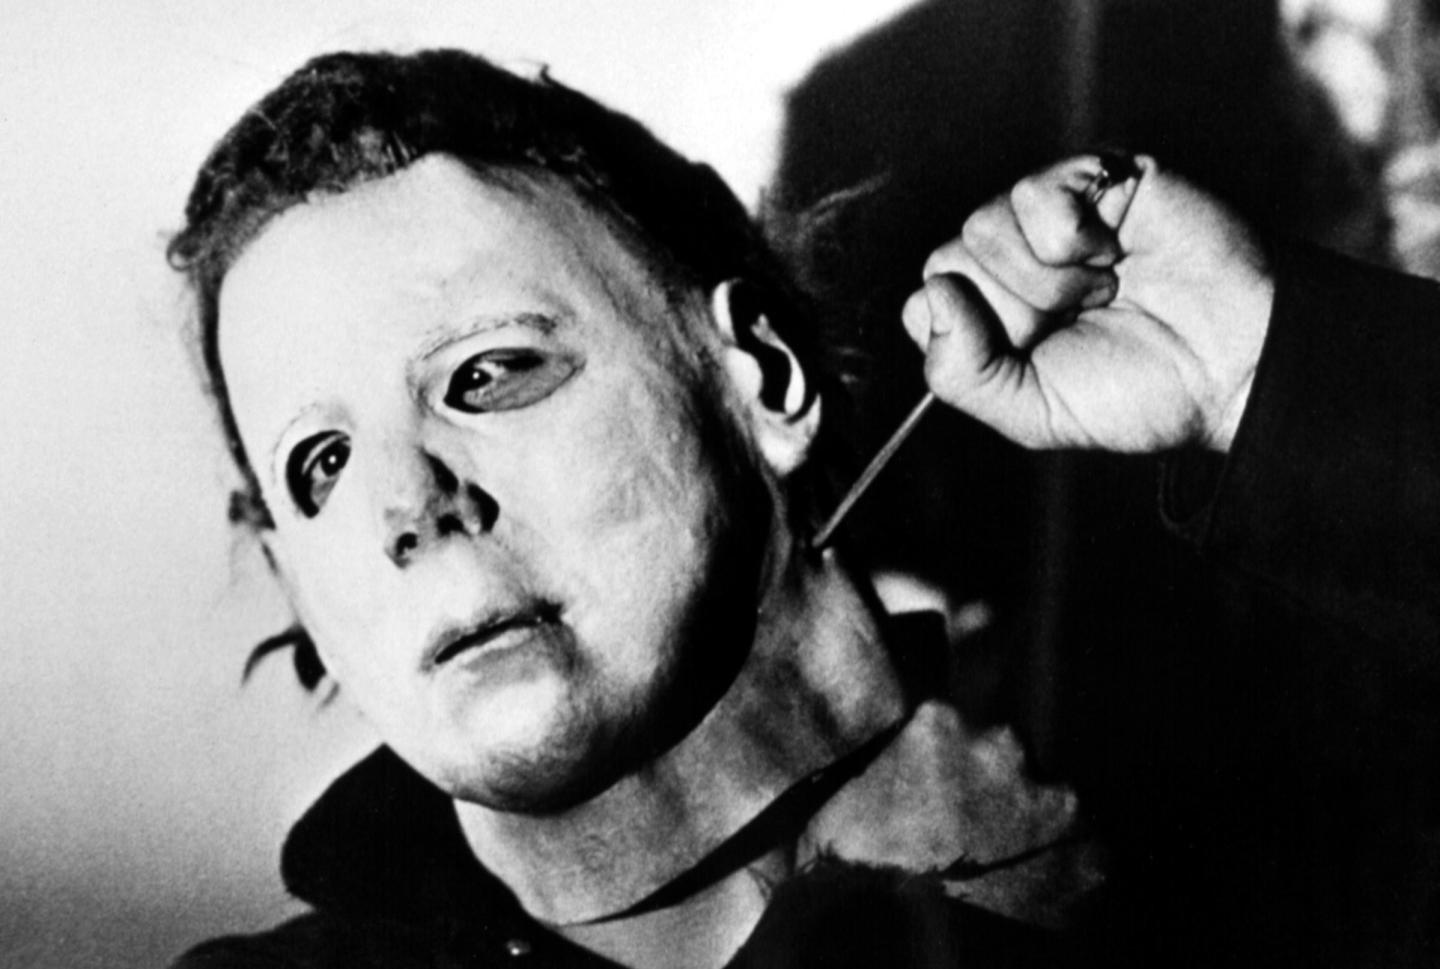 This Boy's Knife Michael Myers featured